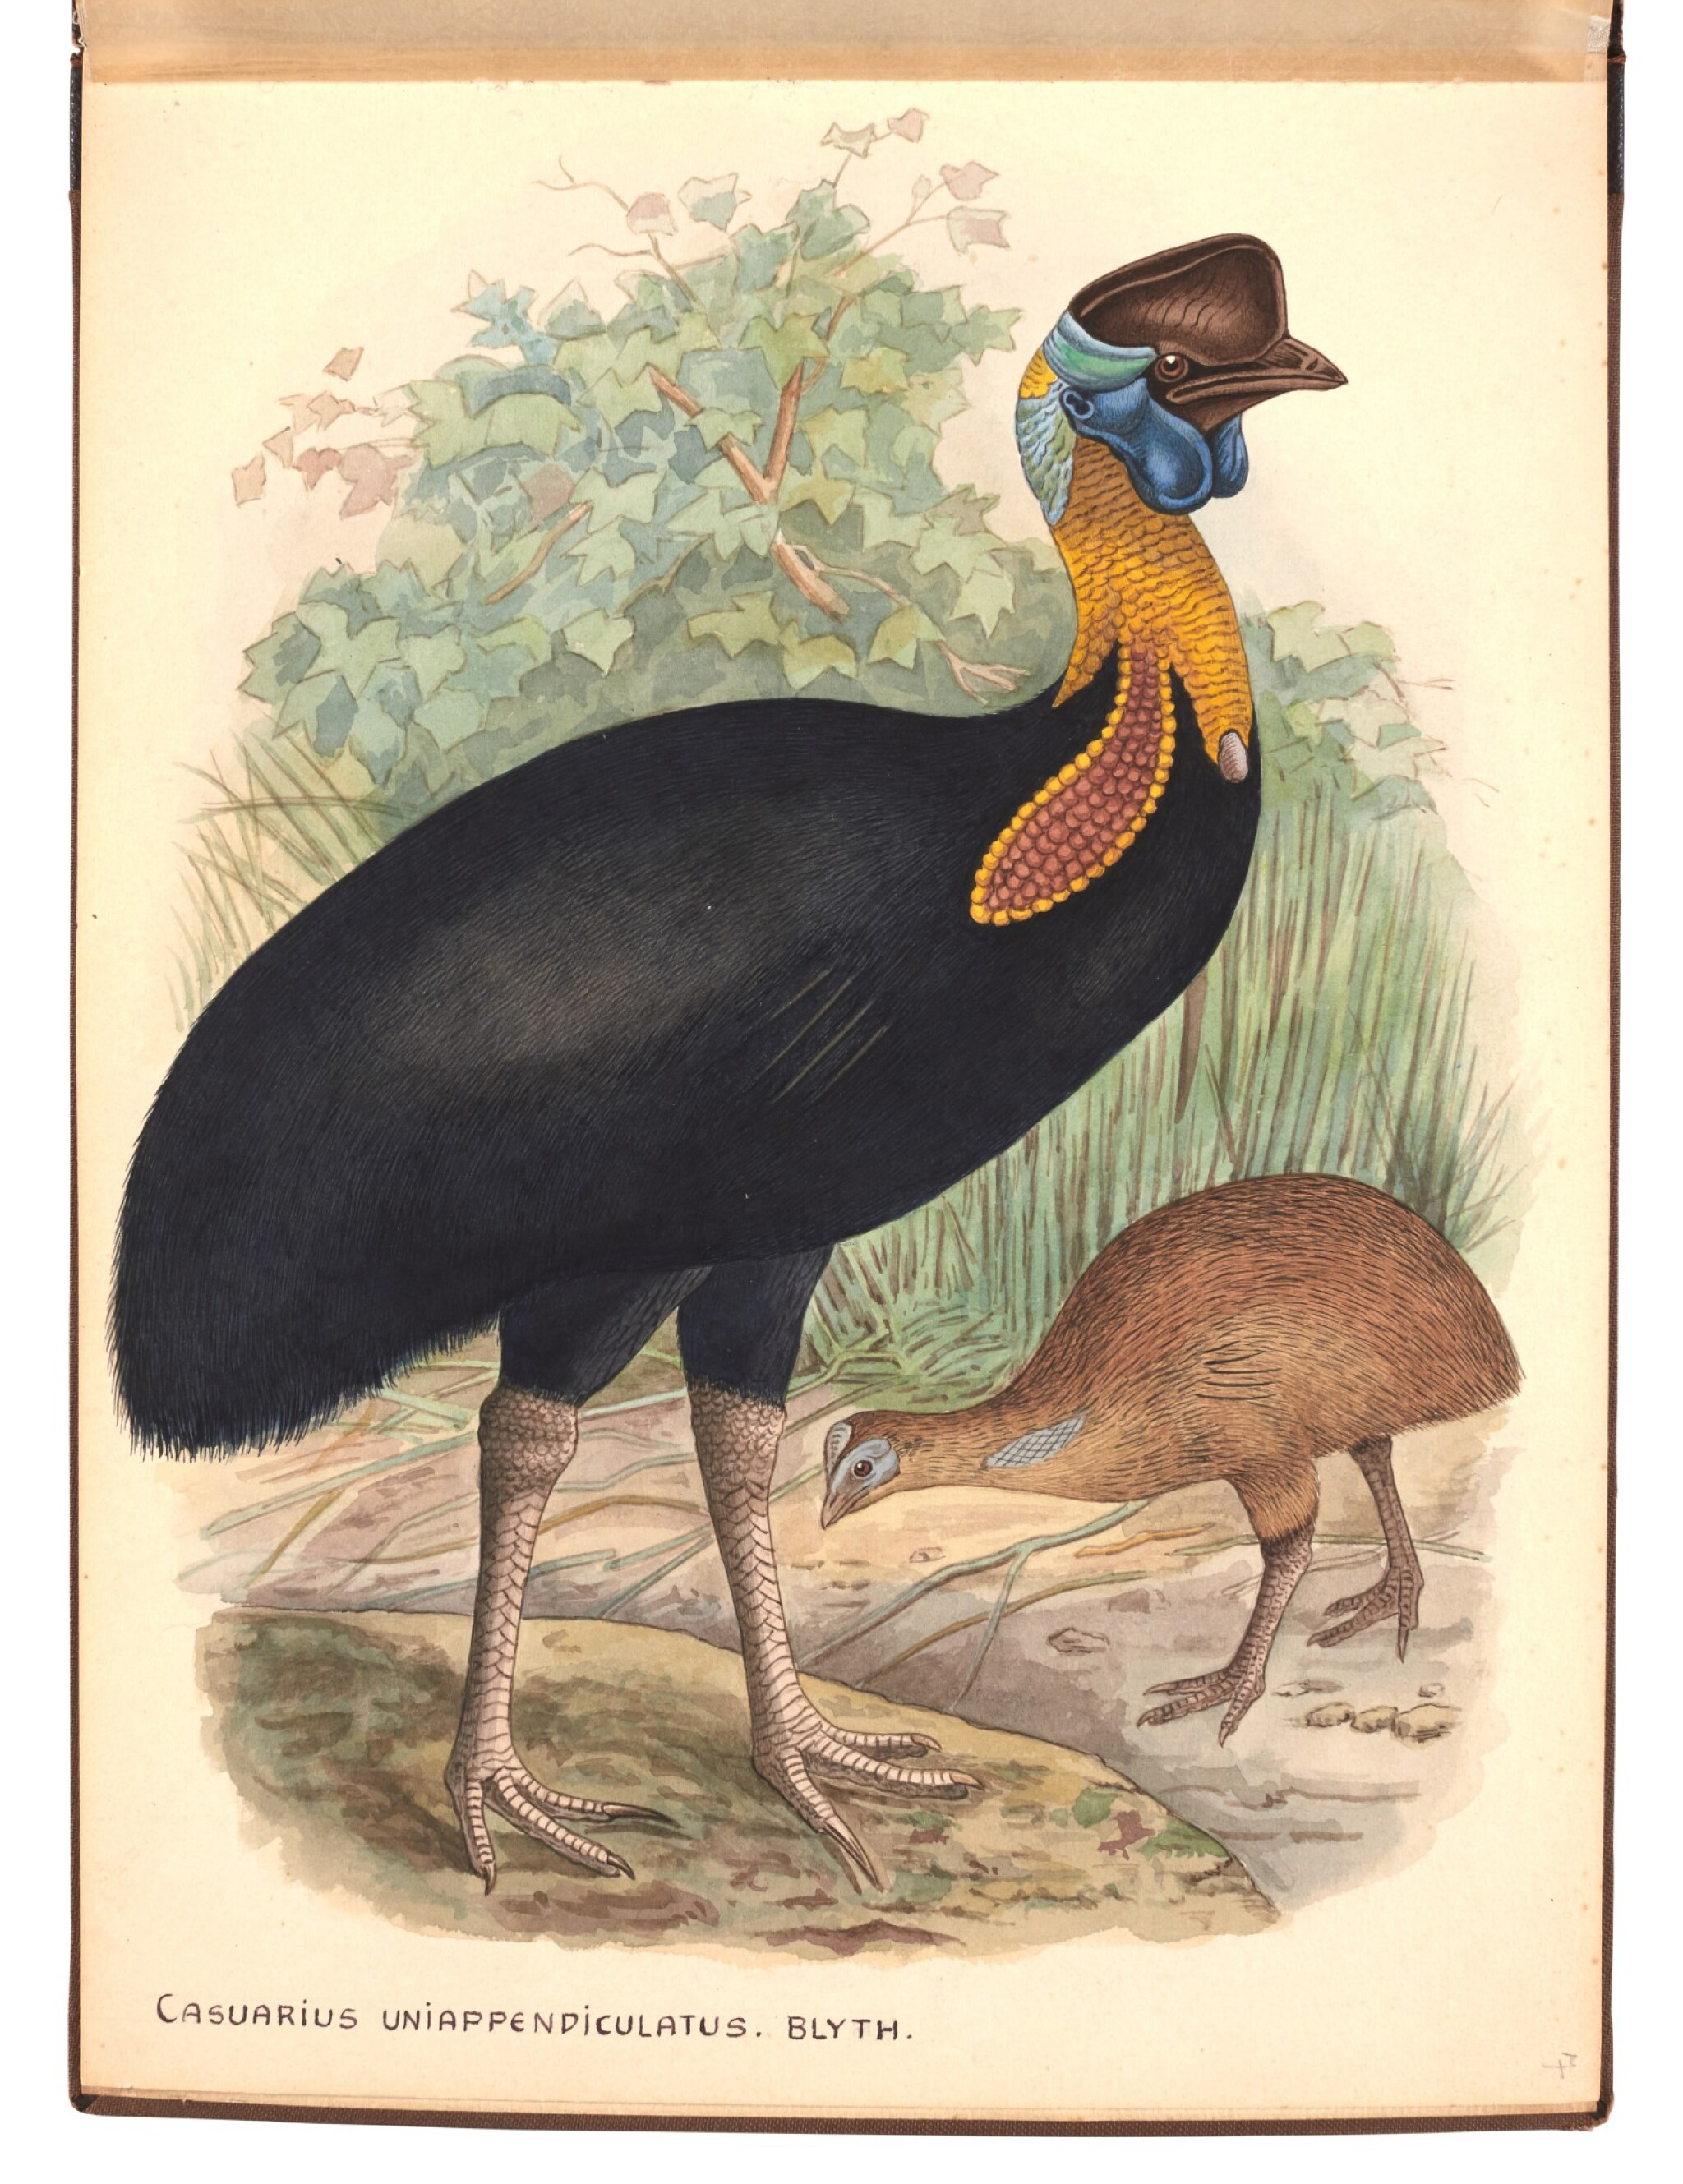 View full screen - View 1 of Lot 29. Lionel Rothschild and John Keulemans | Album of drawings of cassowaries, together with their printed book on the subject.